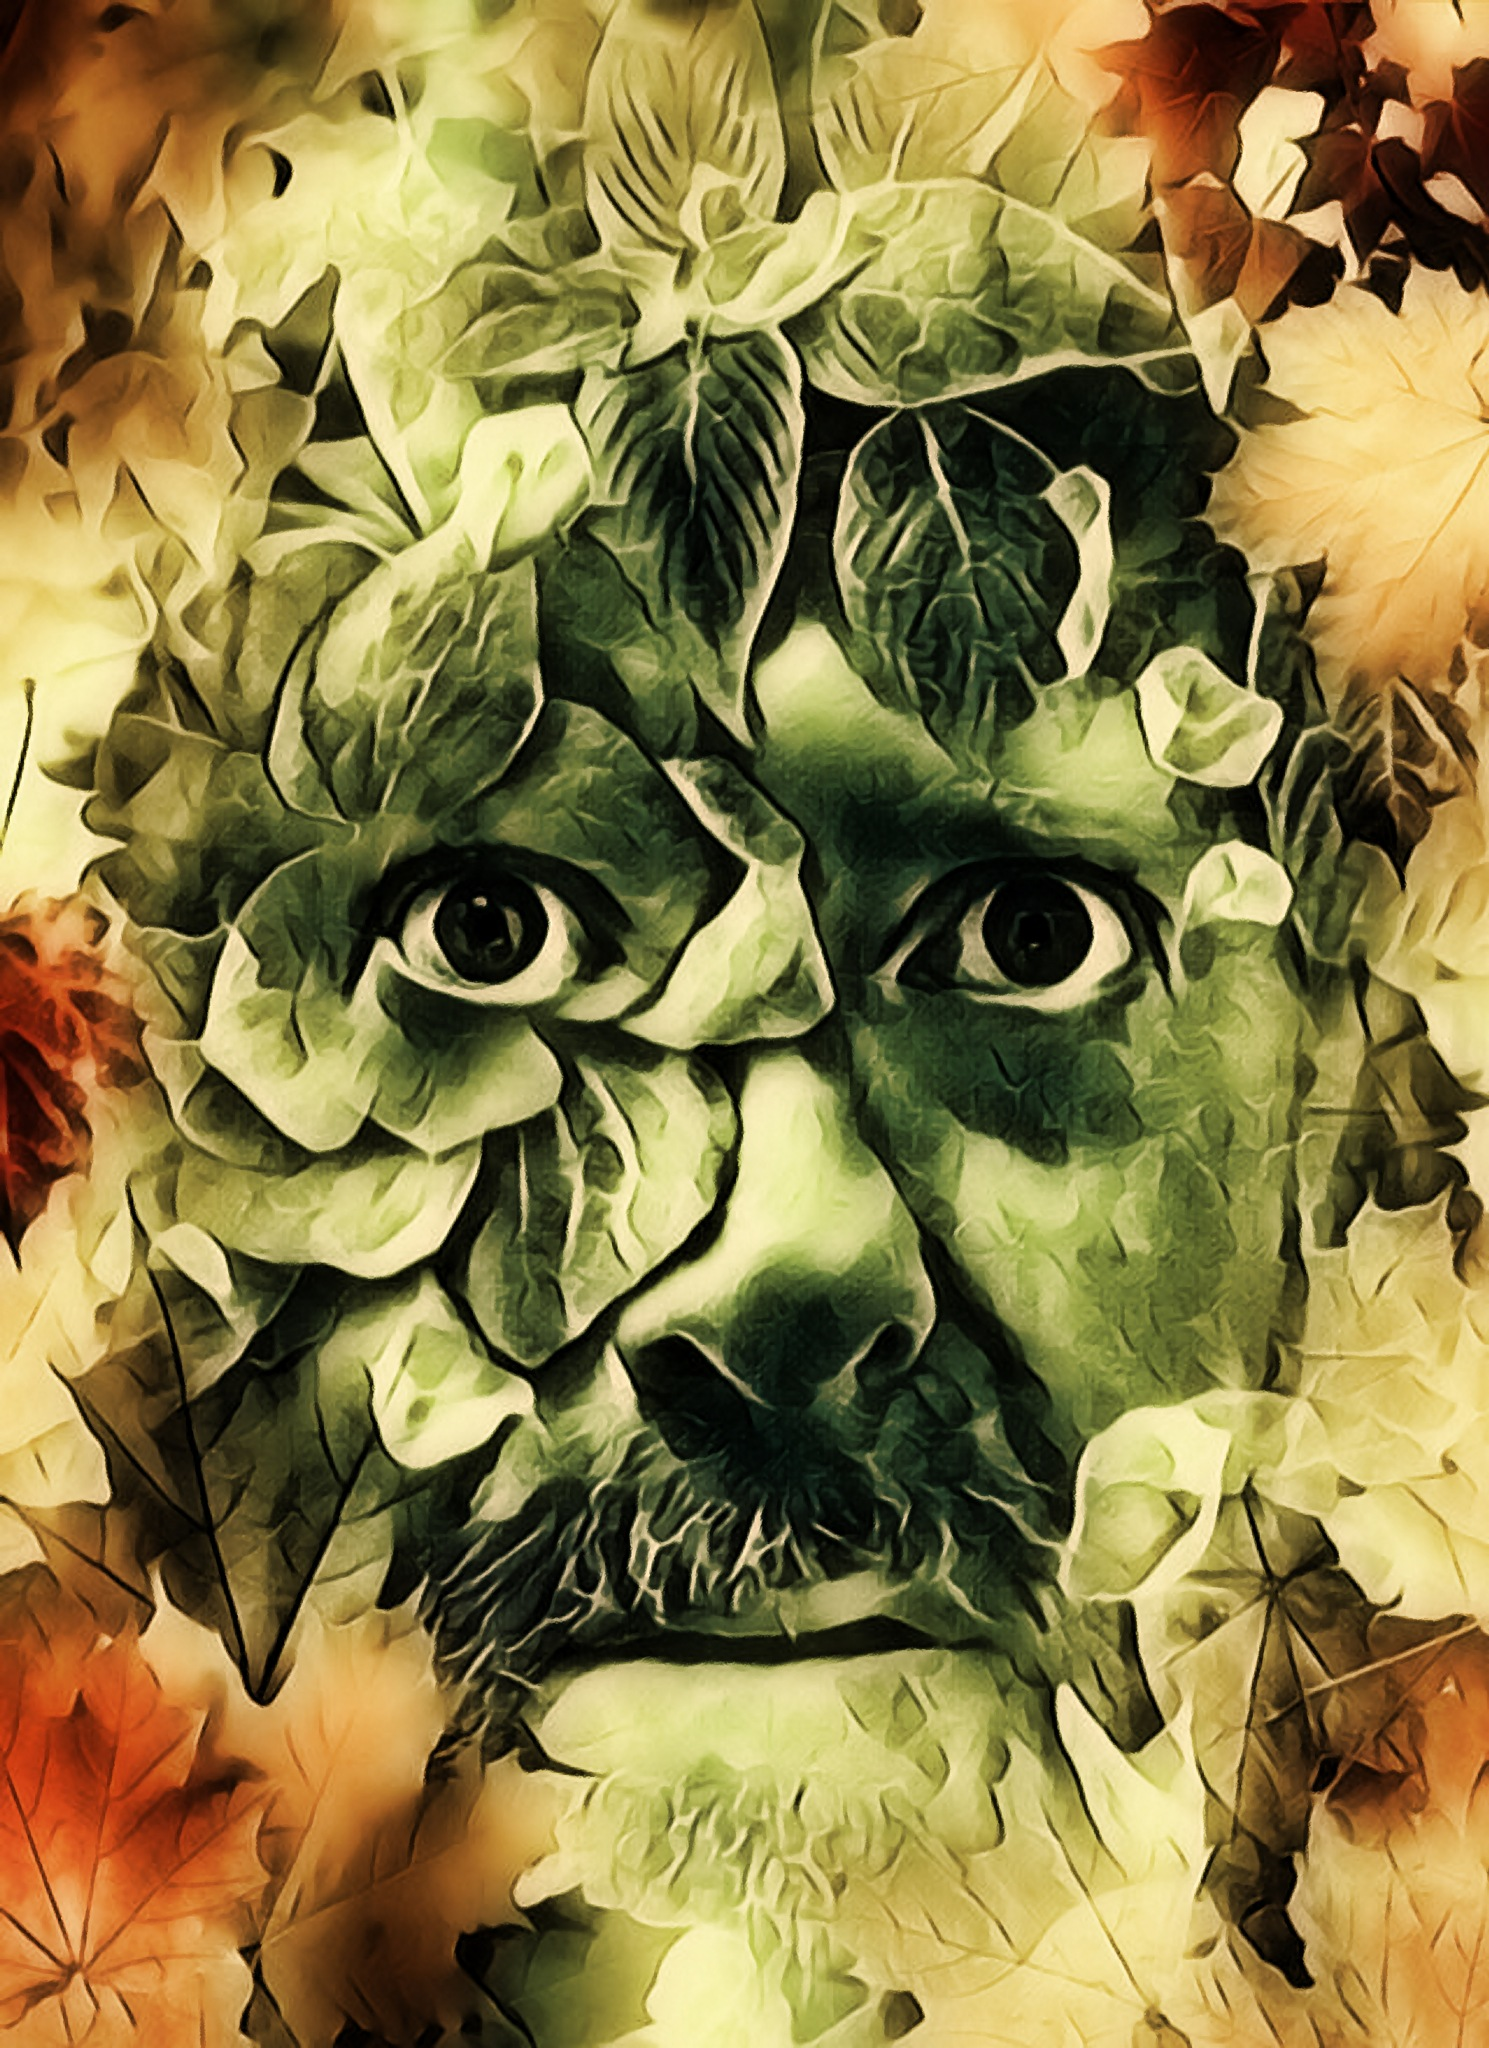 Autumn Of The Green Man by michael.summers.3785